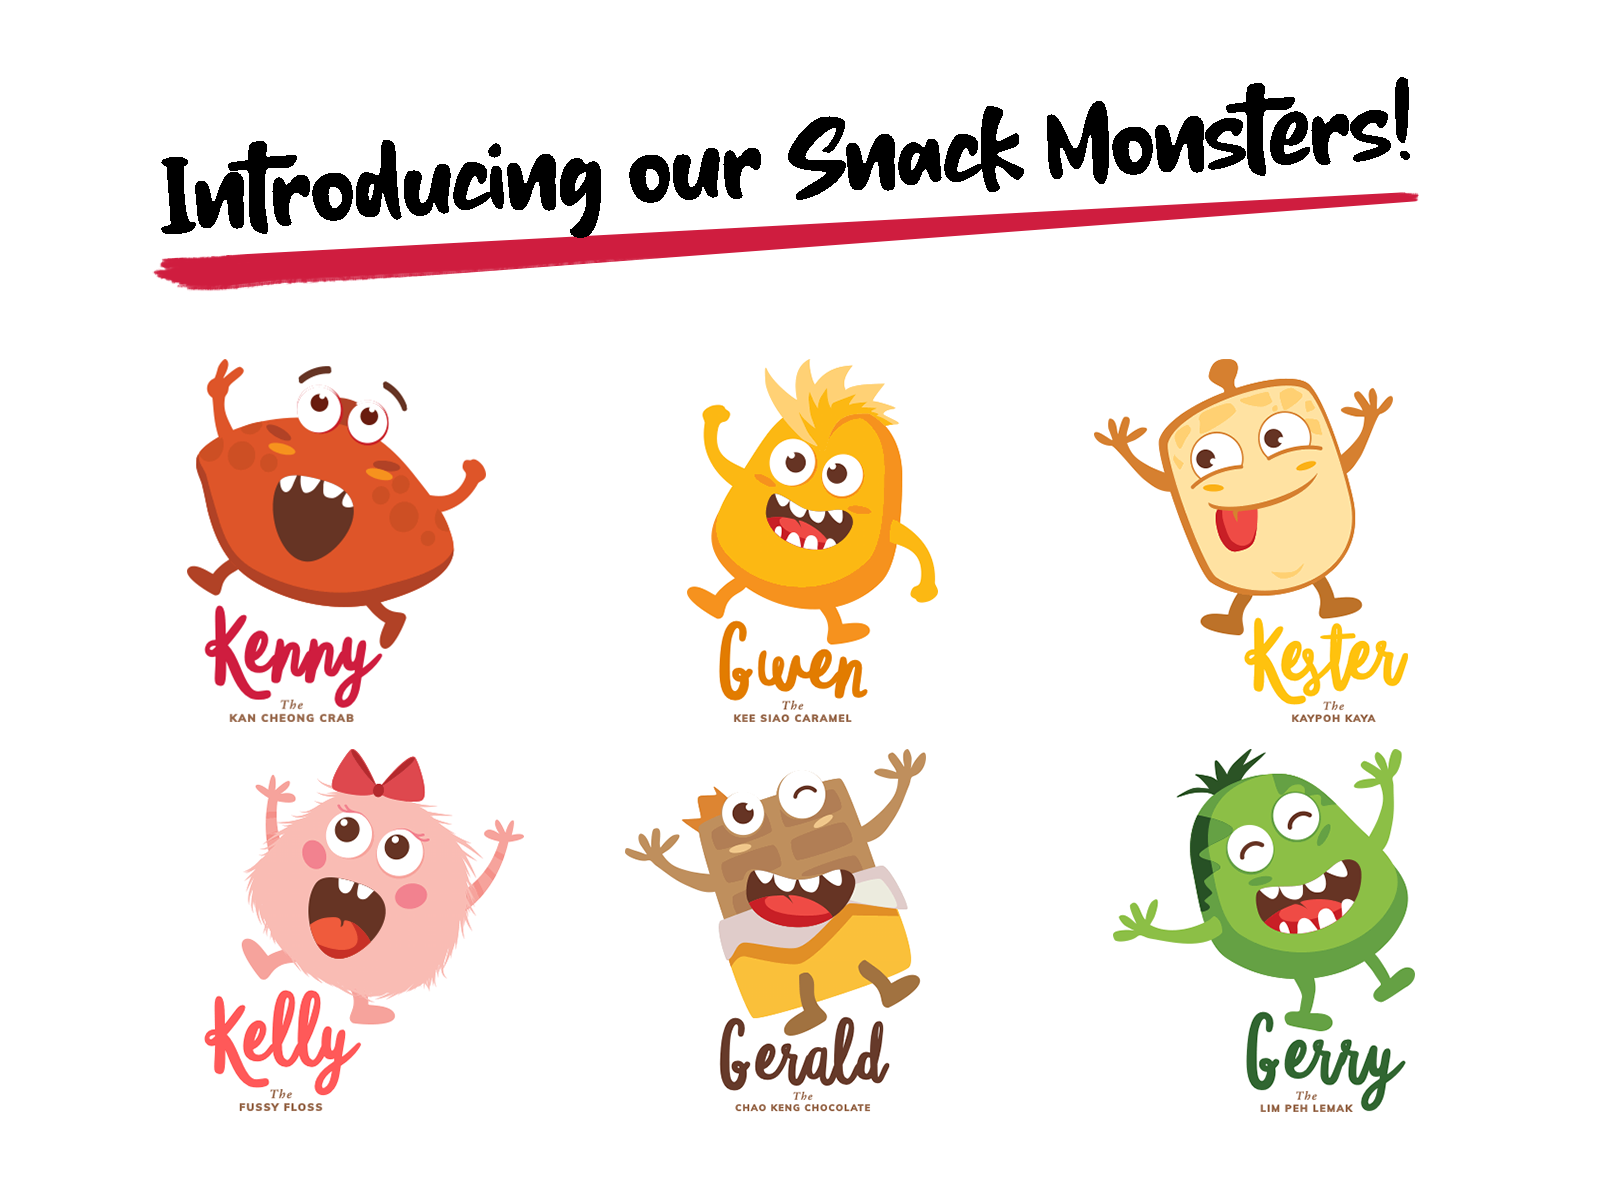 Meet our Snack Monsters!